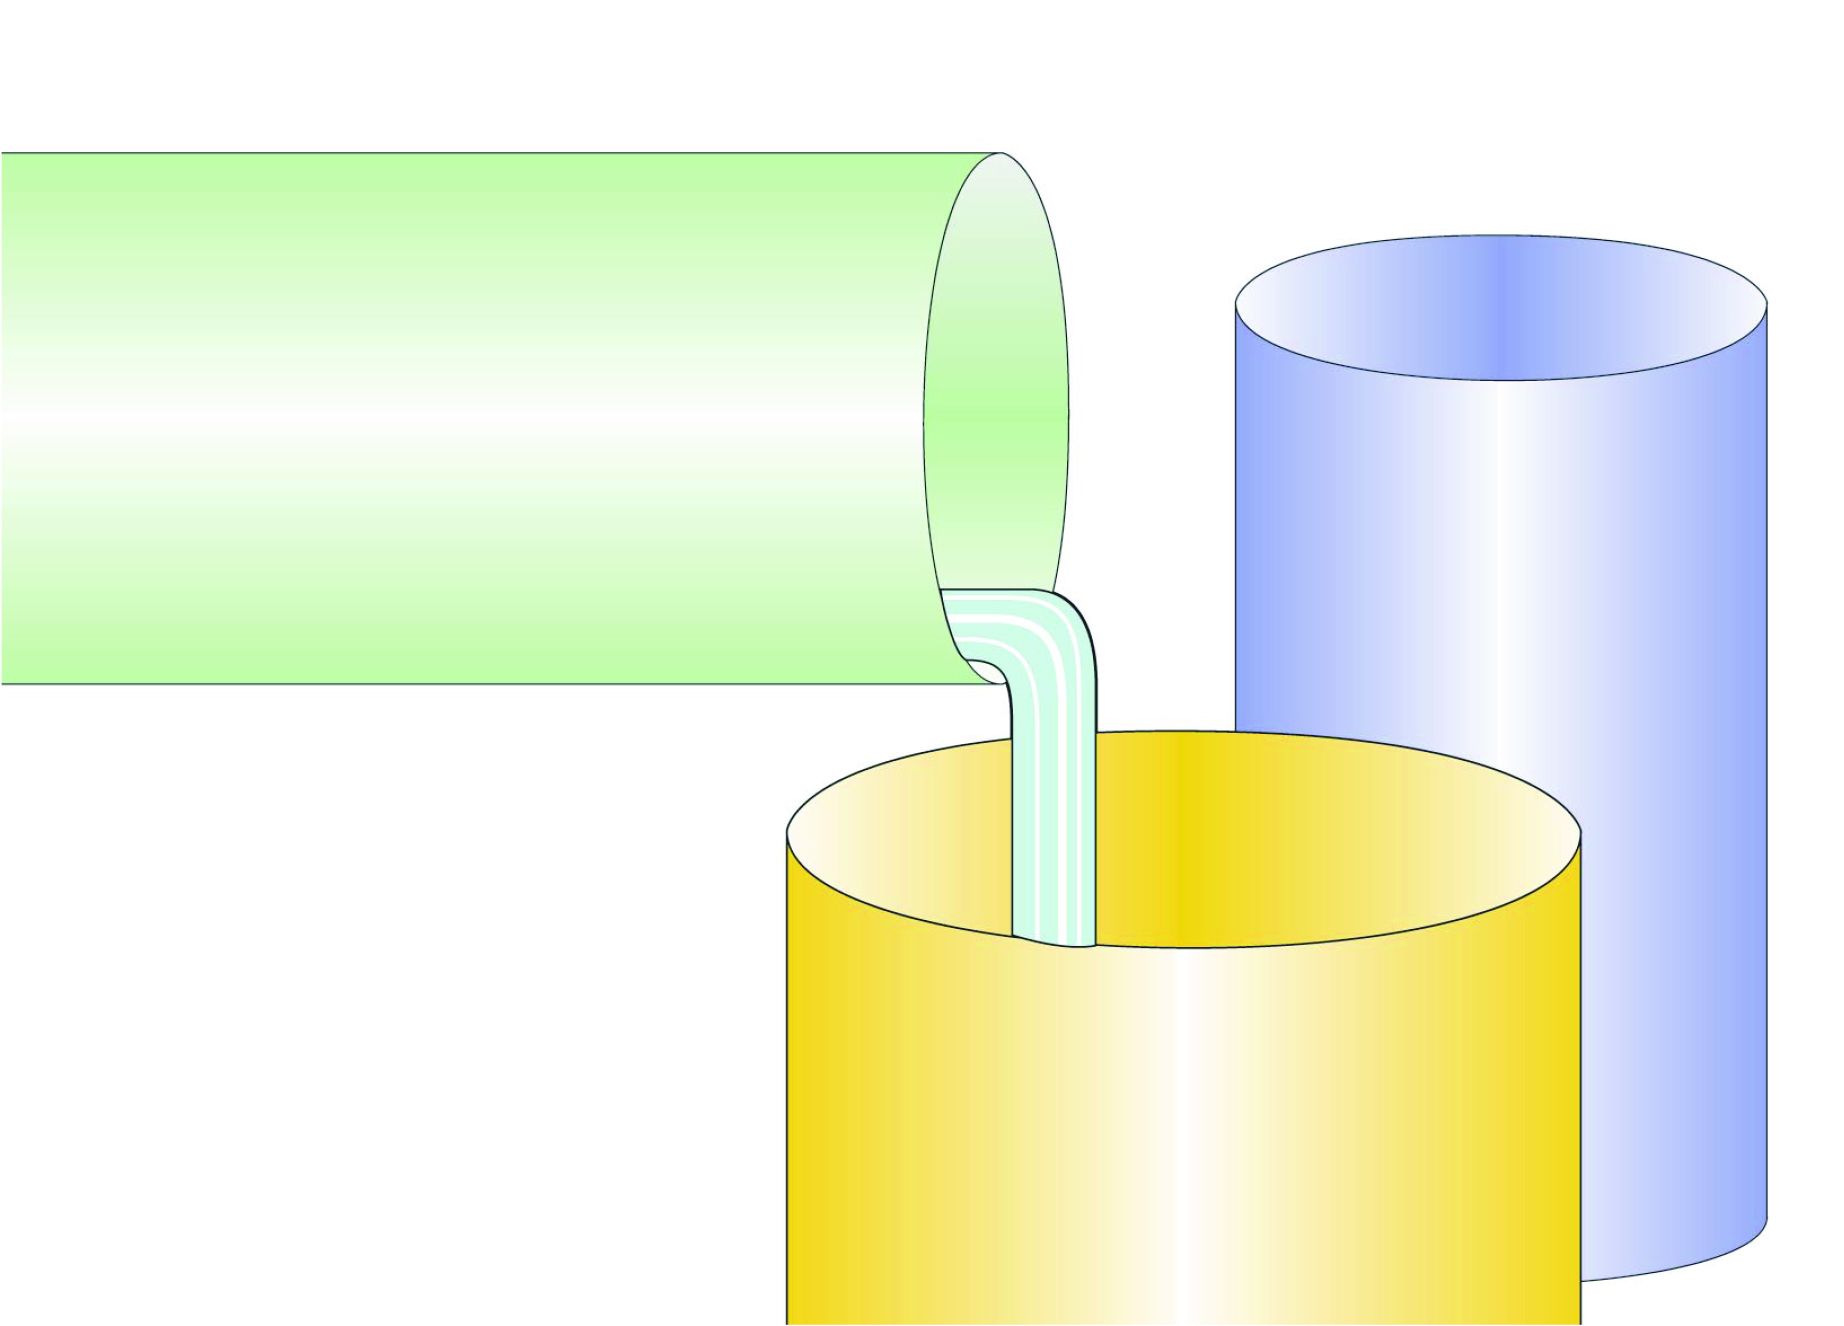 water pouring through pipes illustration